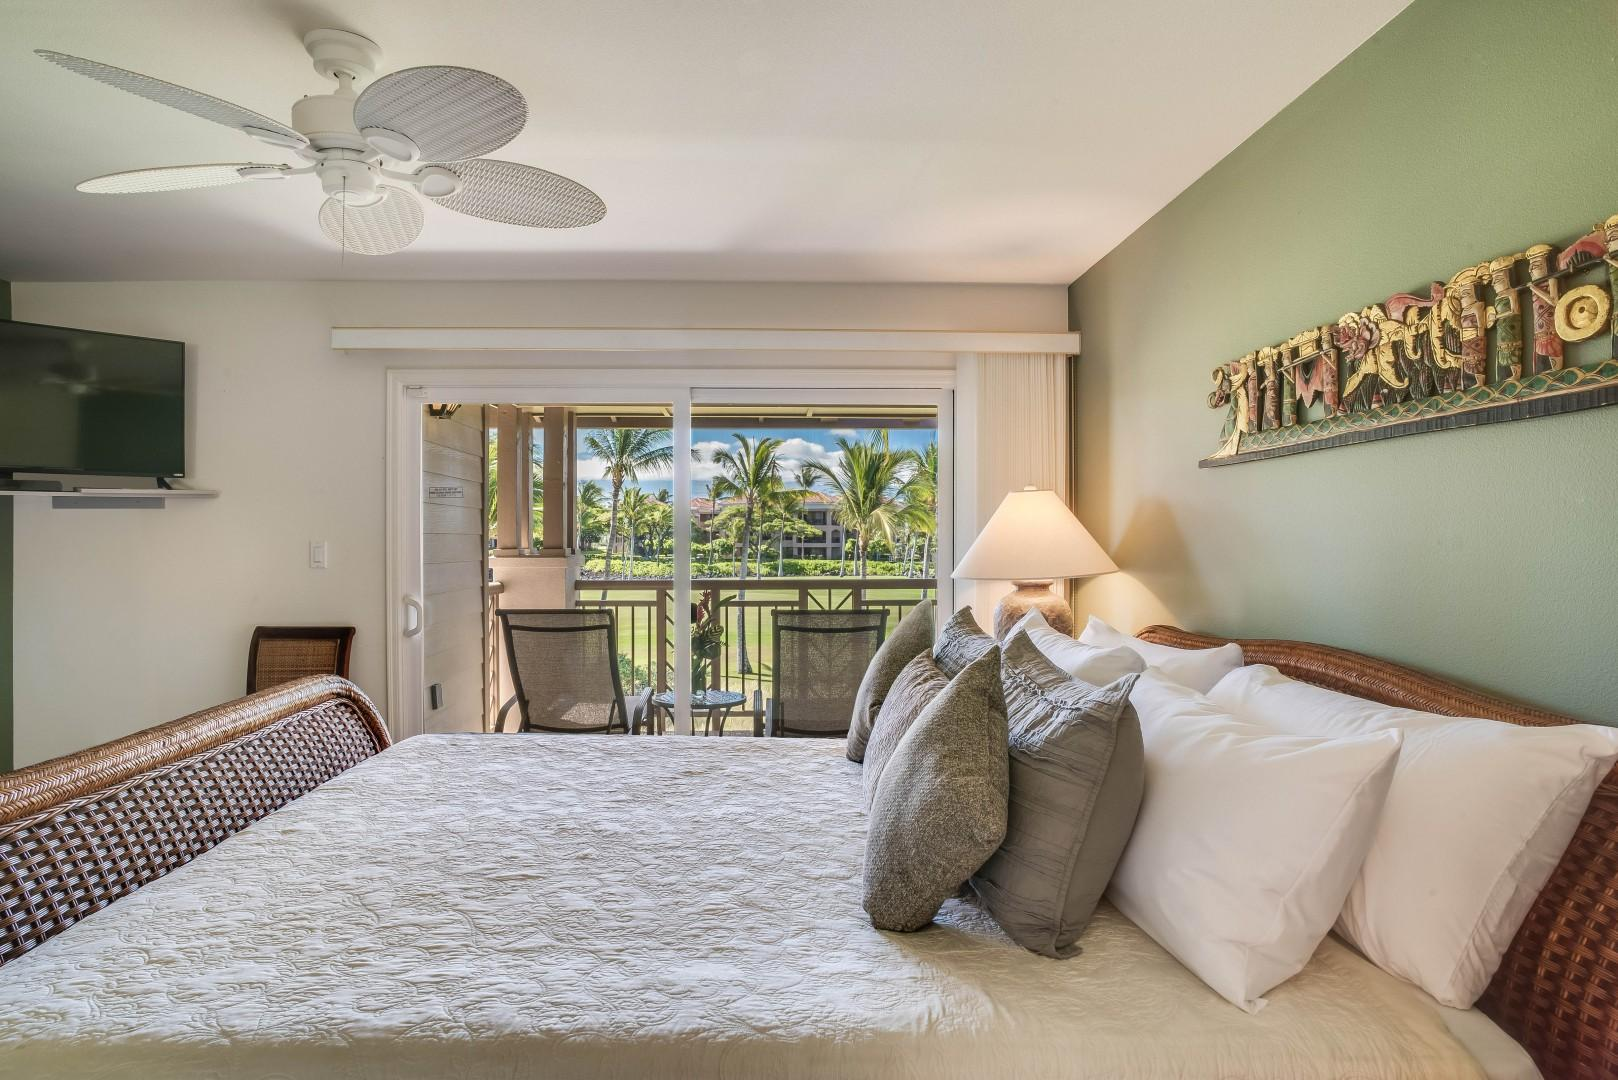 Master Bedroom w/ King Size Bed, Private Lanai w/ Loungers, Flatscreen TV and Ensuite Bath